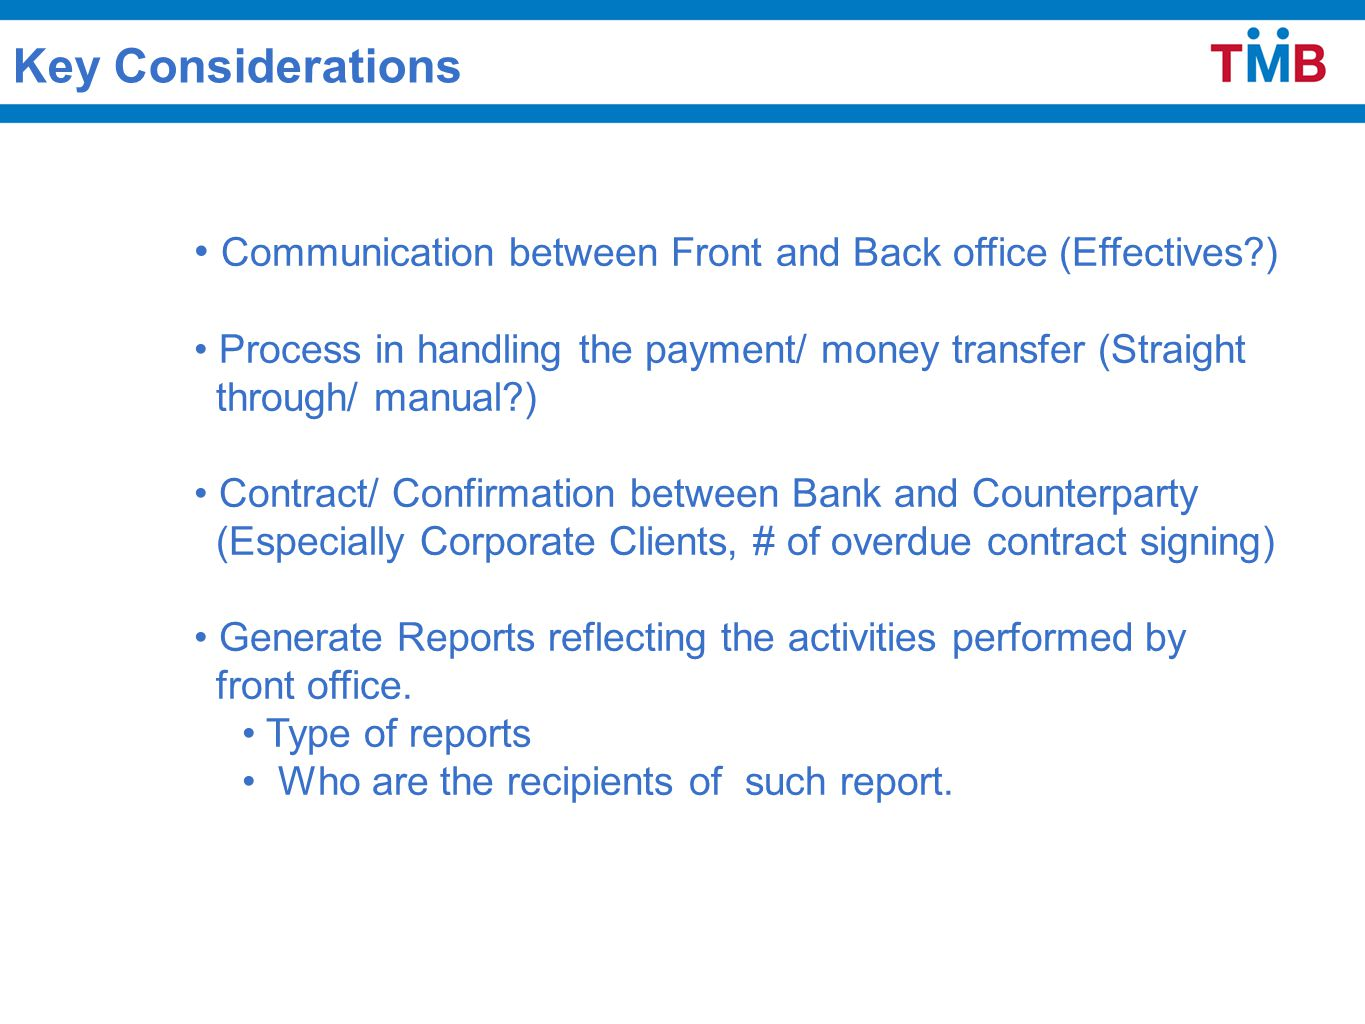 Communication between Front and Back office (Effectives ) Process in handling the payment/ money transfer (Straight through/ manual ) Contract/ Confirmation between Bank and Counterparty (Especially Corporate Clients, # of overdue contract signing) Generate Reports reflecting the activities performed by front office.